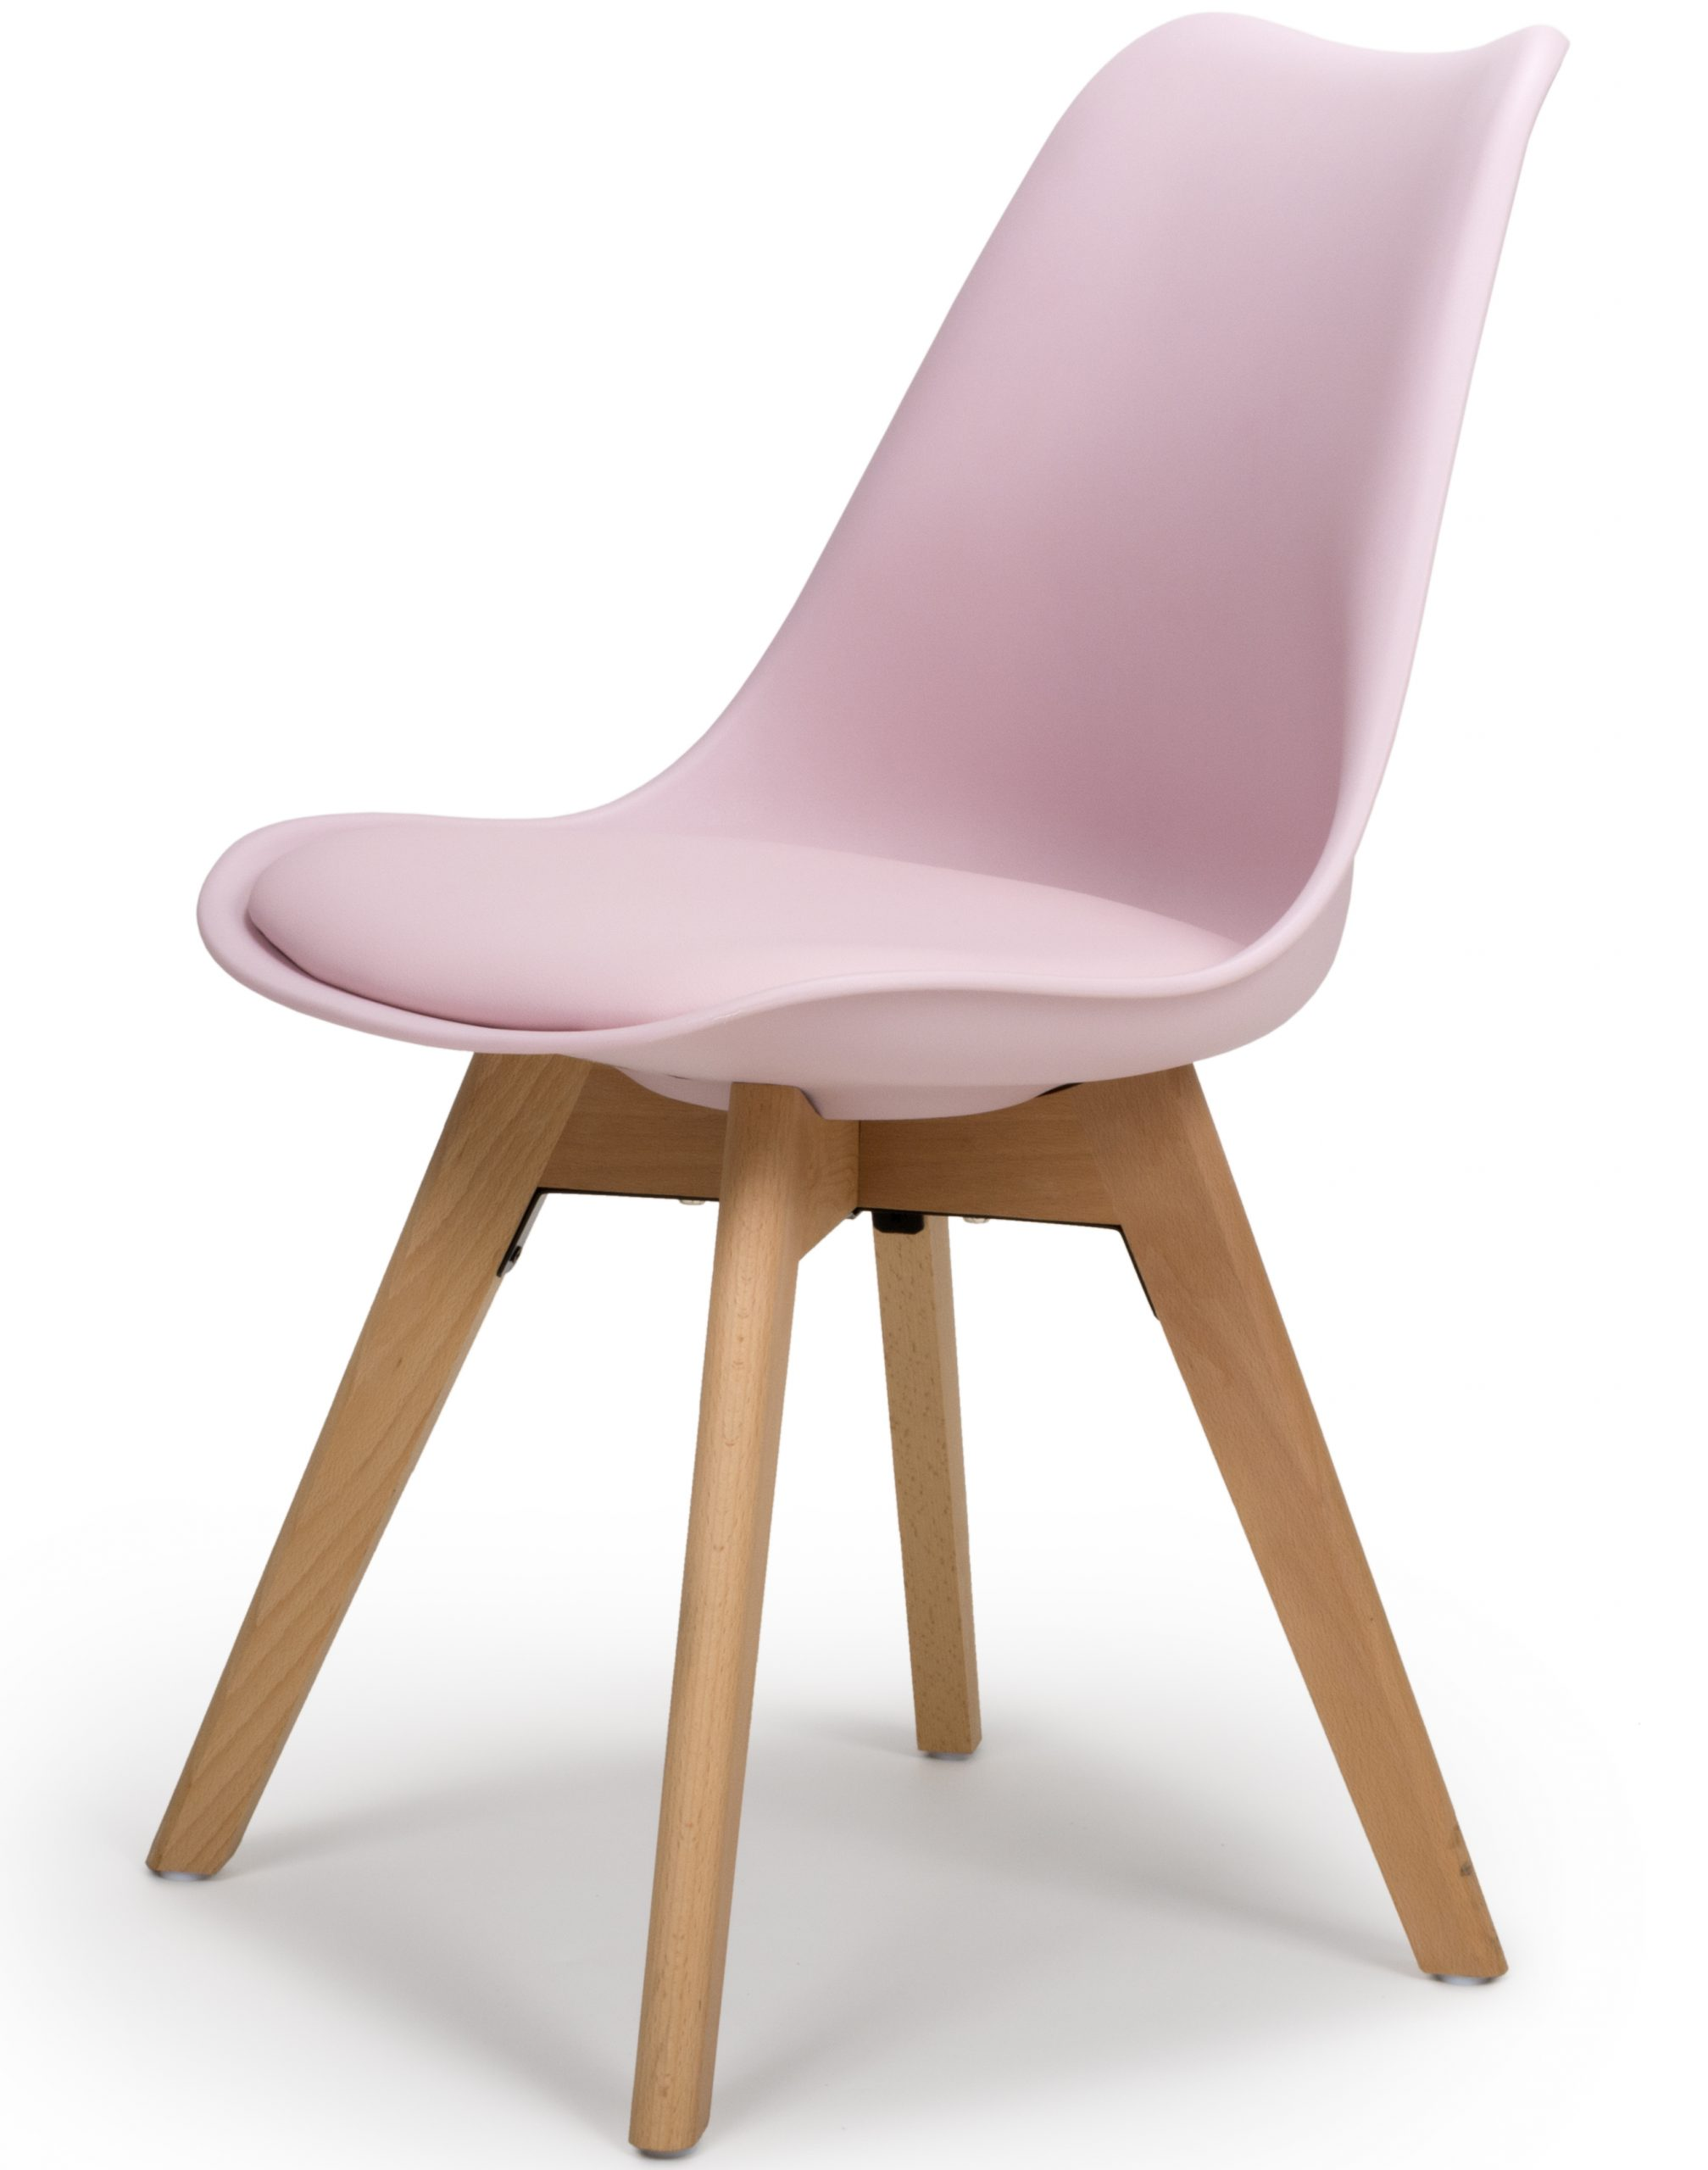 Urban Pink Molded plastic dining chair